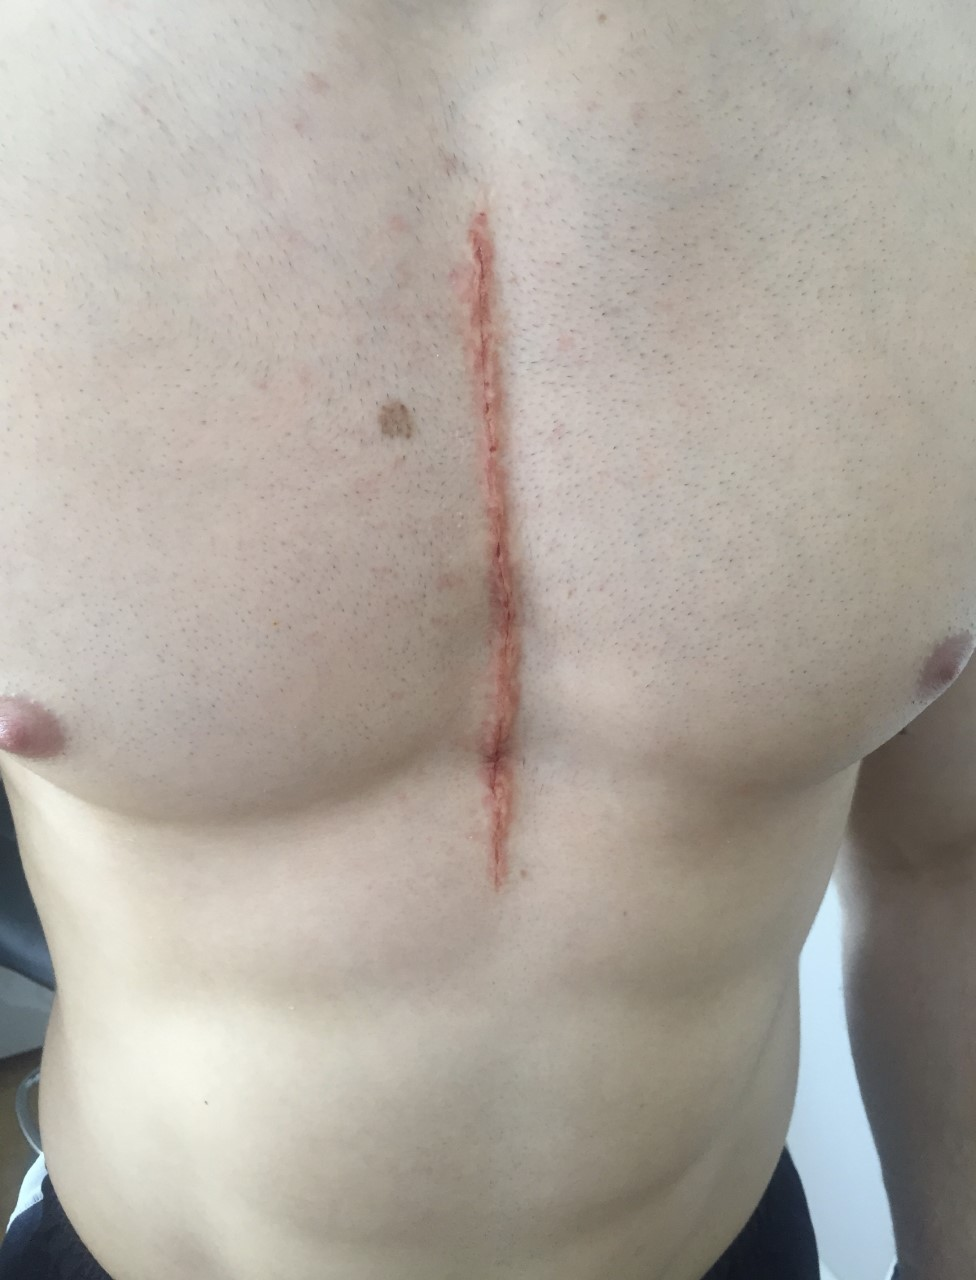 spfx - surgical chest incision